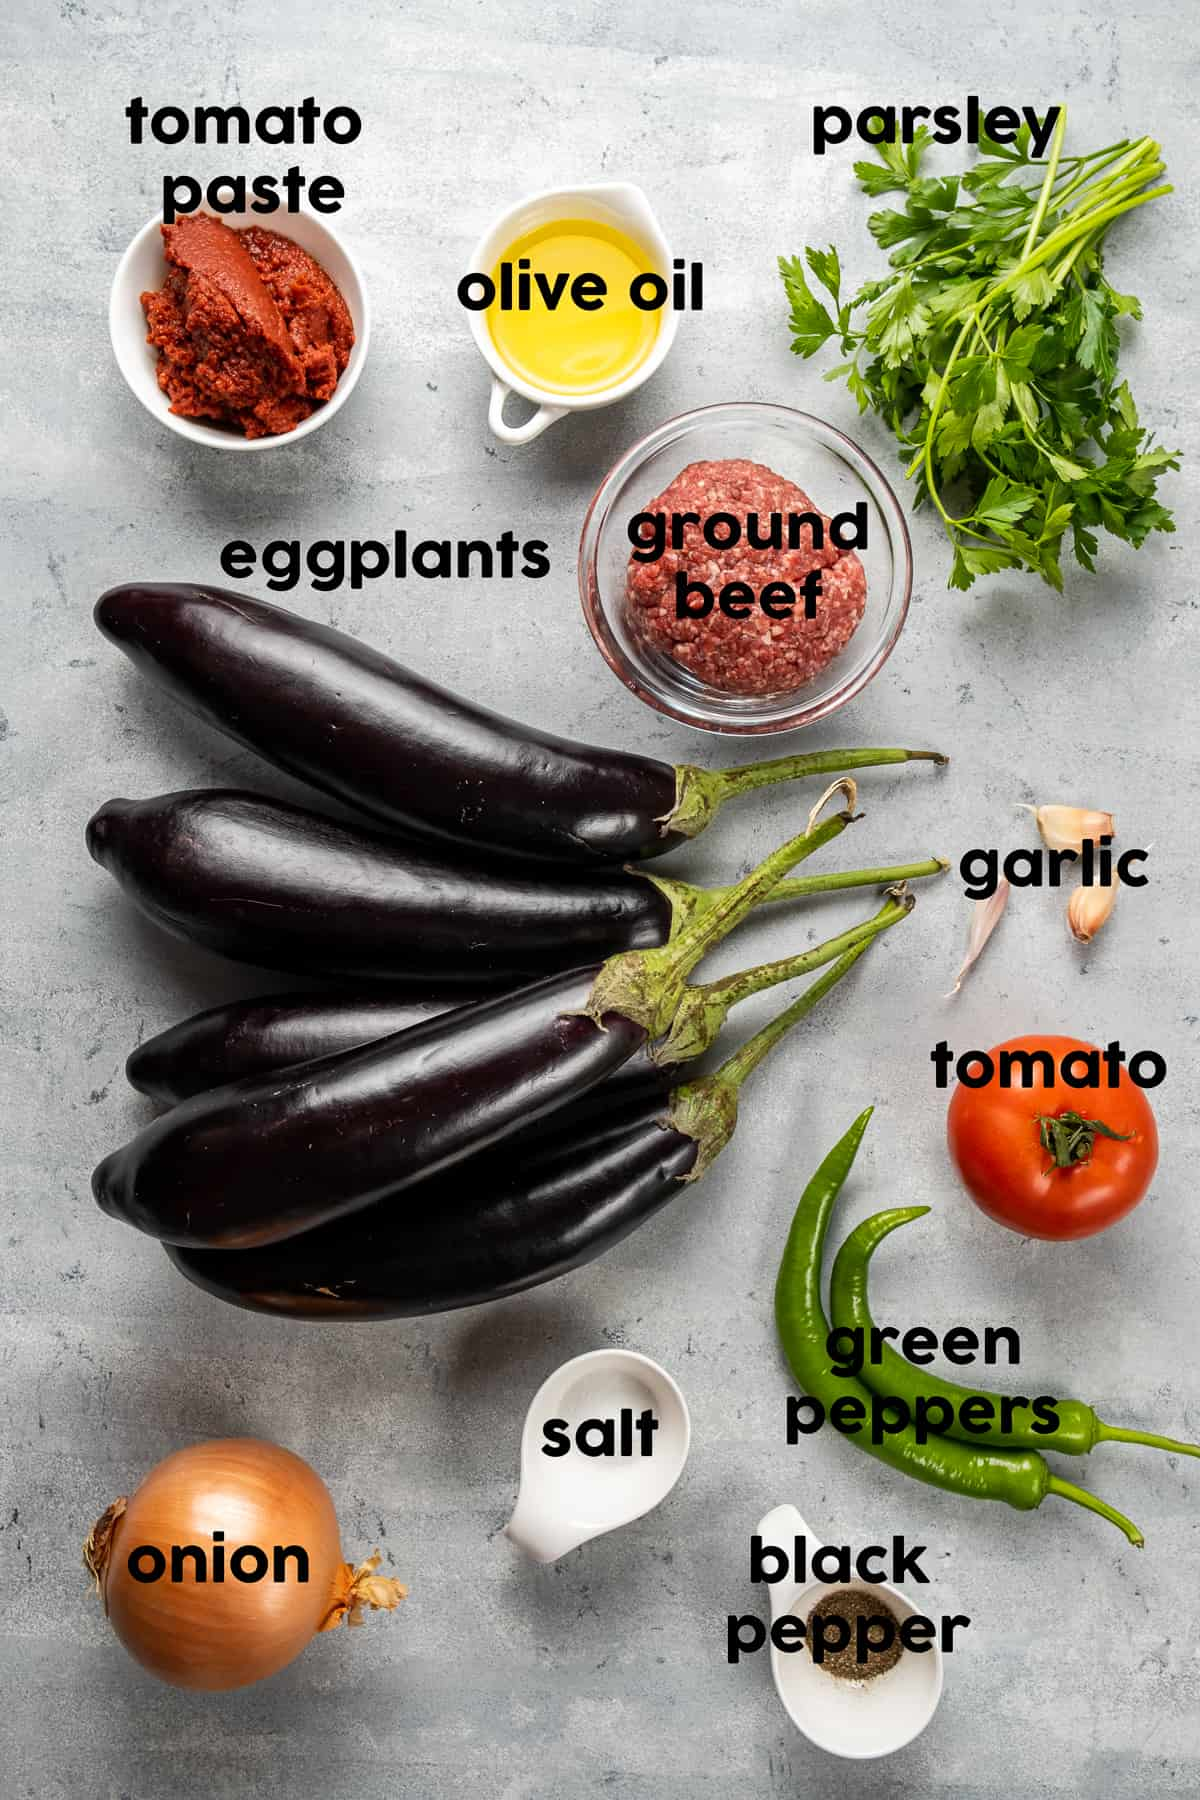 Eggplants, ground beef, tomato paste, olive oil, Turkish green peppers, a tomato, garlic cloves, onion, parsley on a grey background.